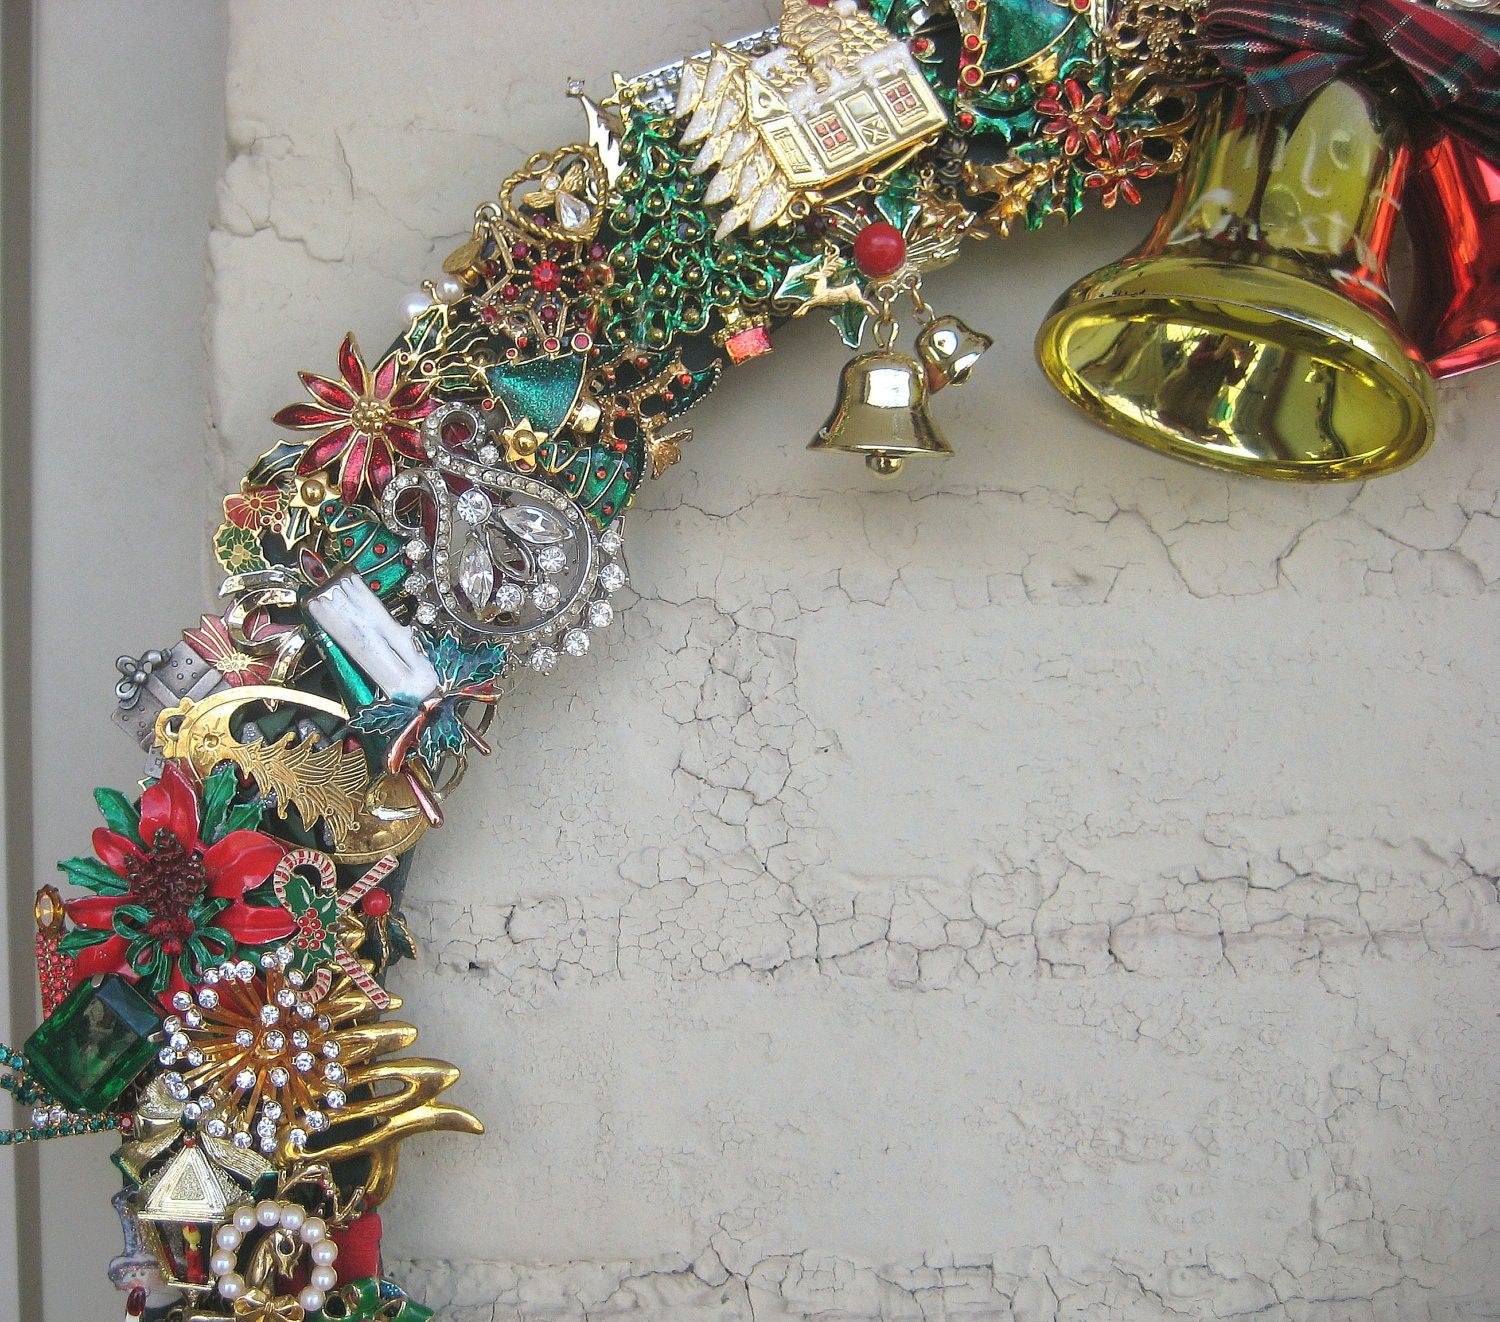 Wreath Christmas Holiday Vintage Brooches GIANT 18 inch  Repurposed Upcycled OOAK